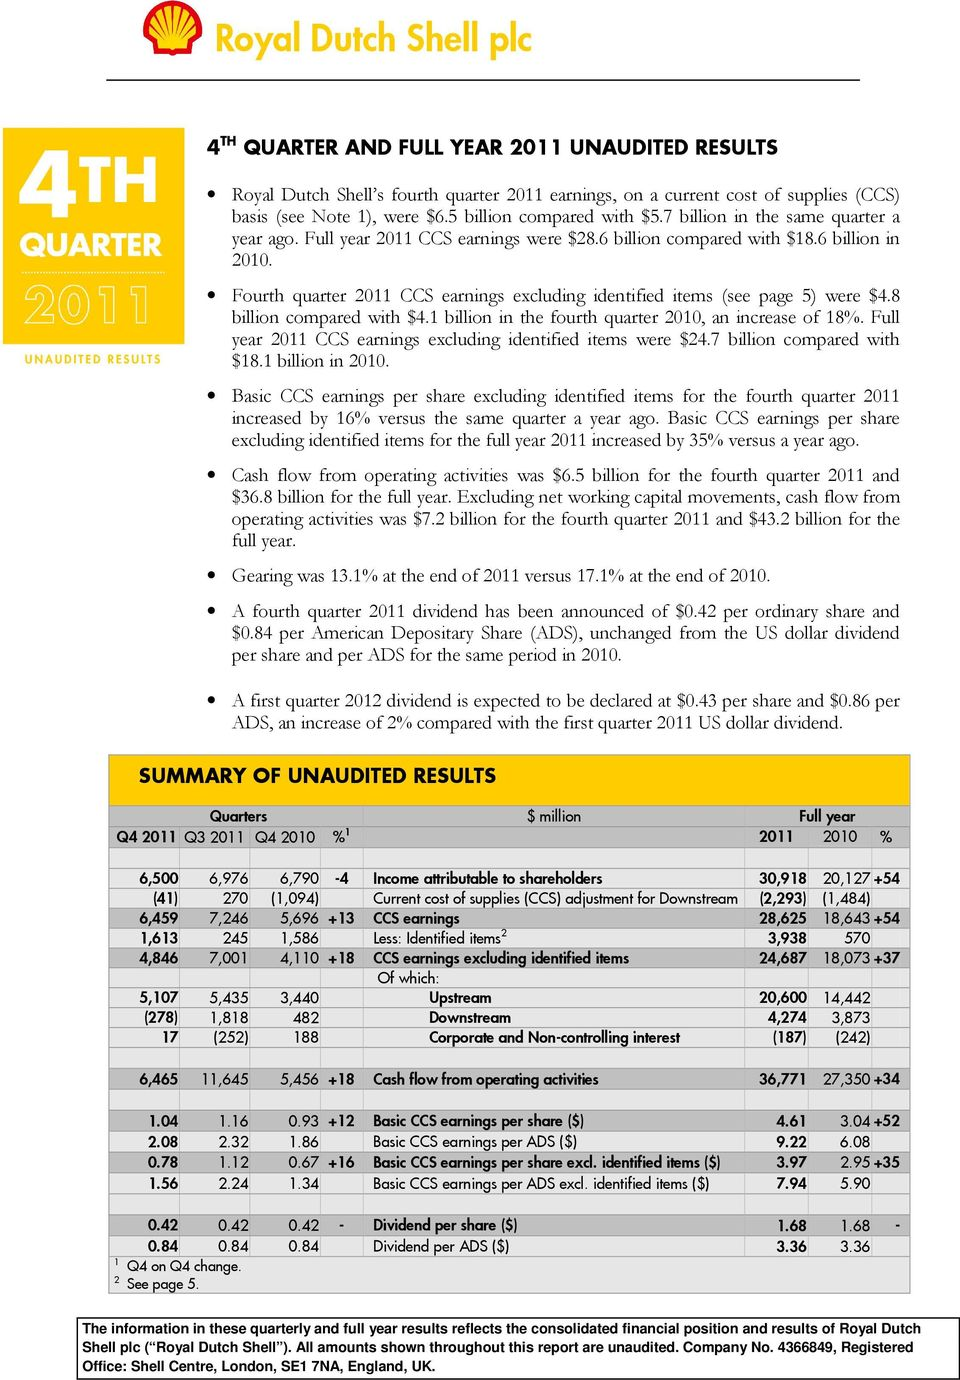 Fourth quarter 2011 CCS earnings excluding identified items (see page 5) were $4.8 billion compared with $4.1 billion in the fourth quarter 2010, an increase of 18%.